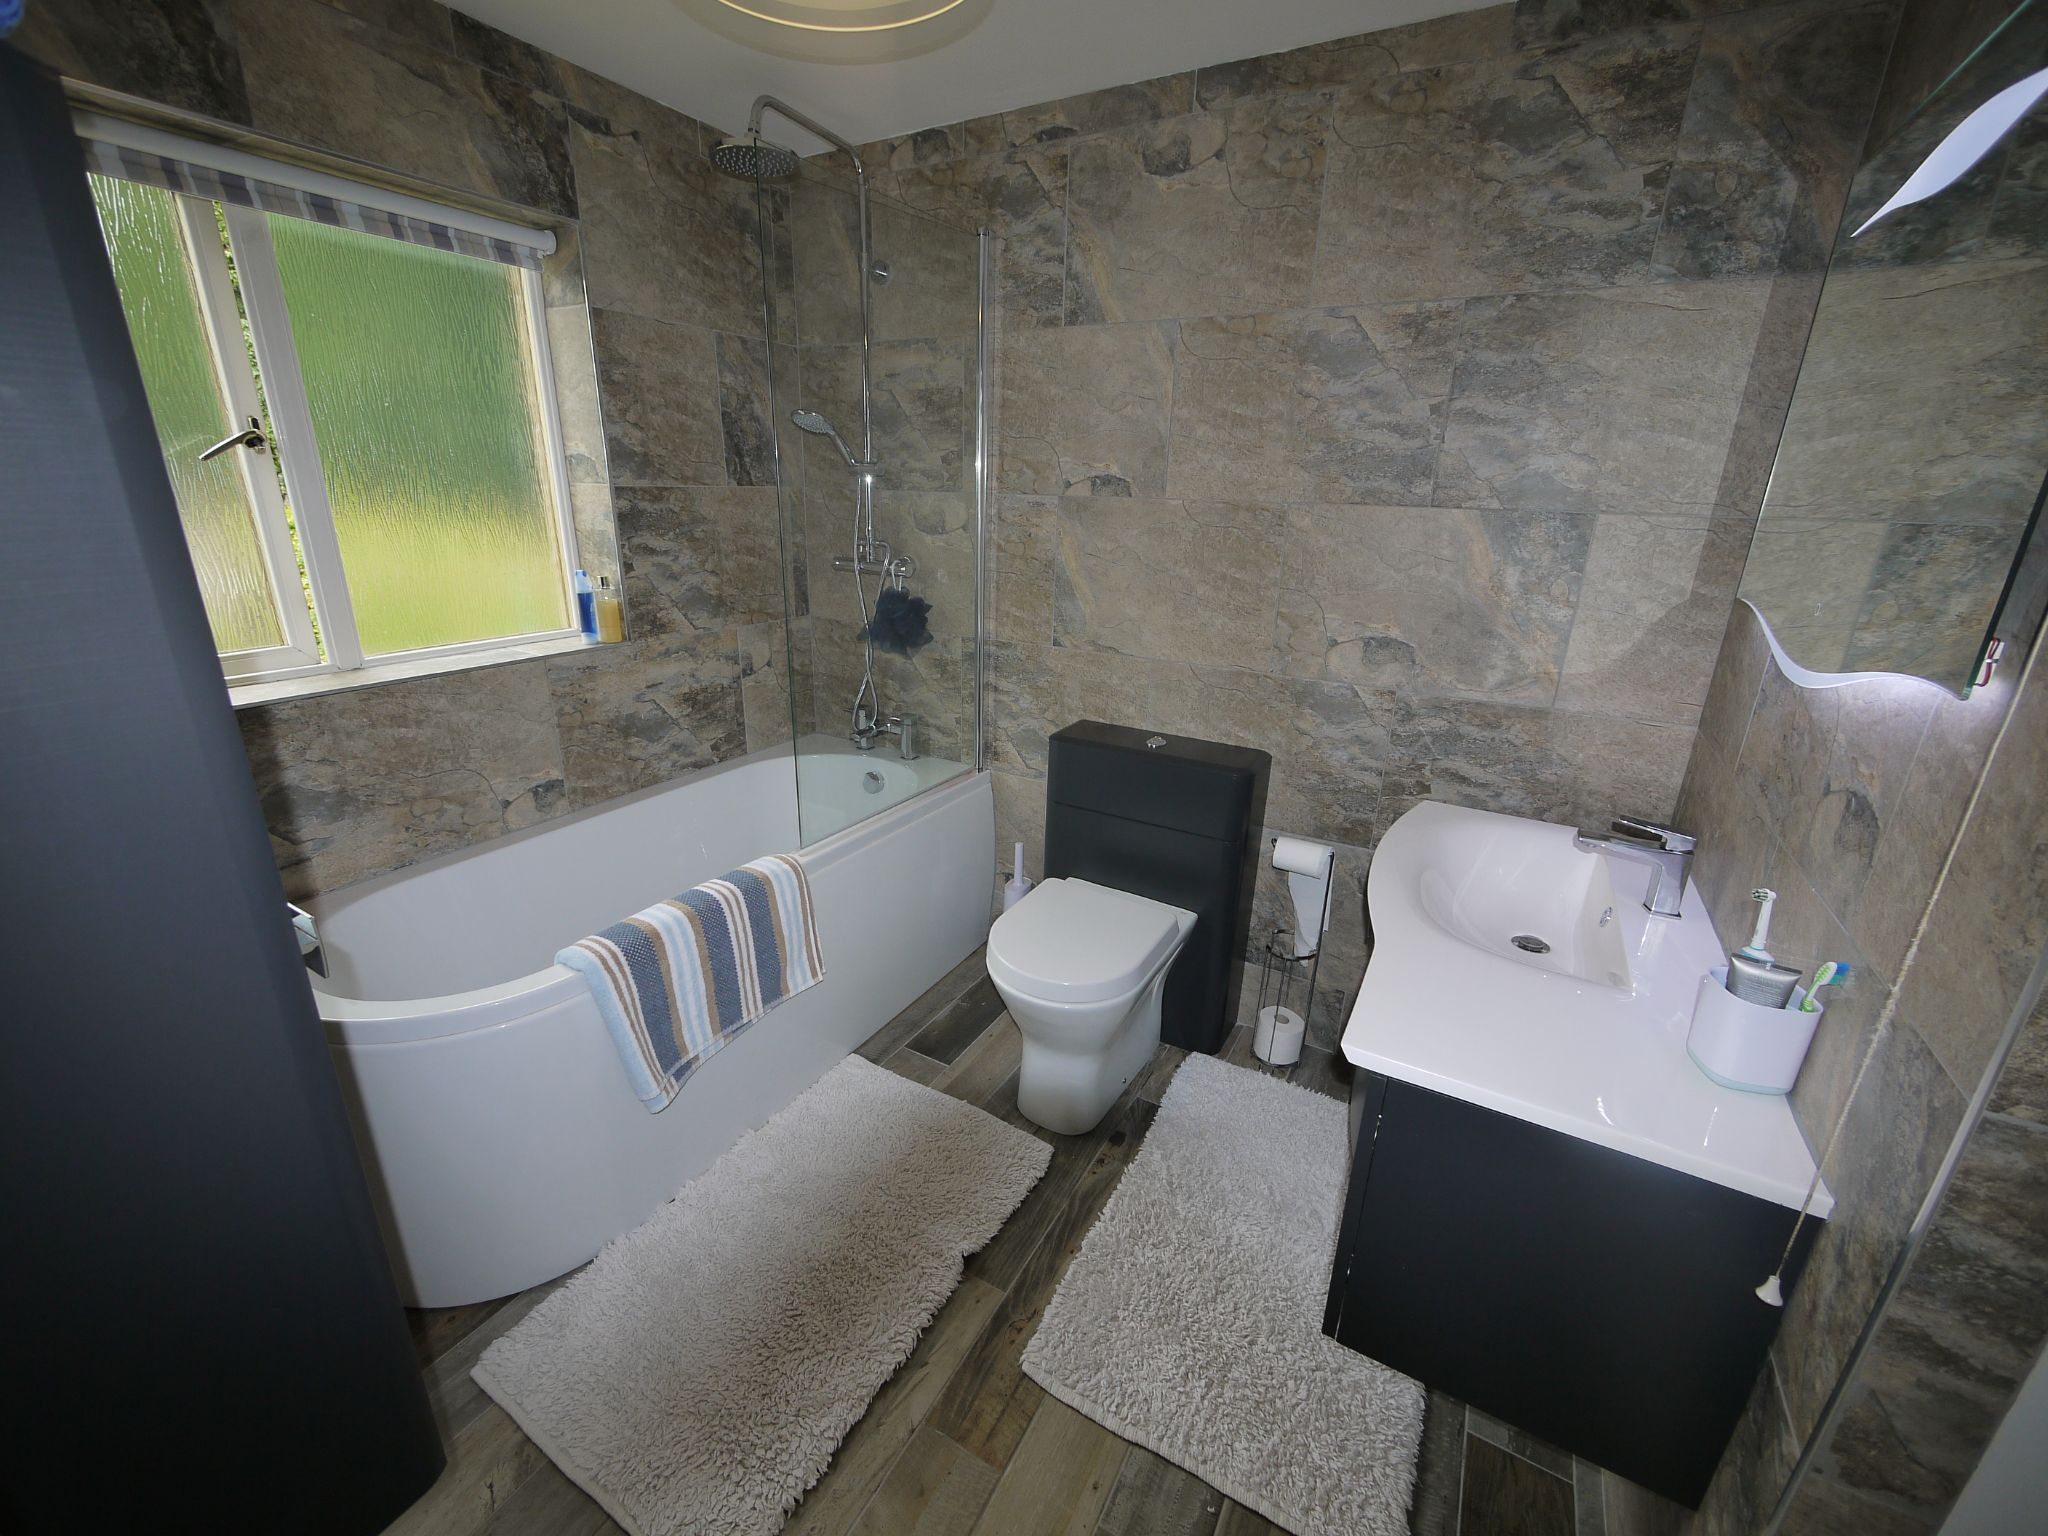 4 bedroom detached house For Sale in Brighouse - Bathroom.